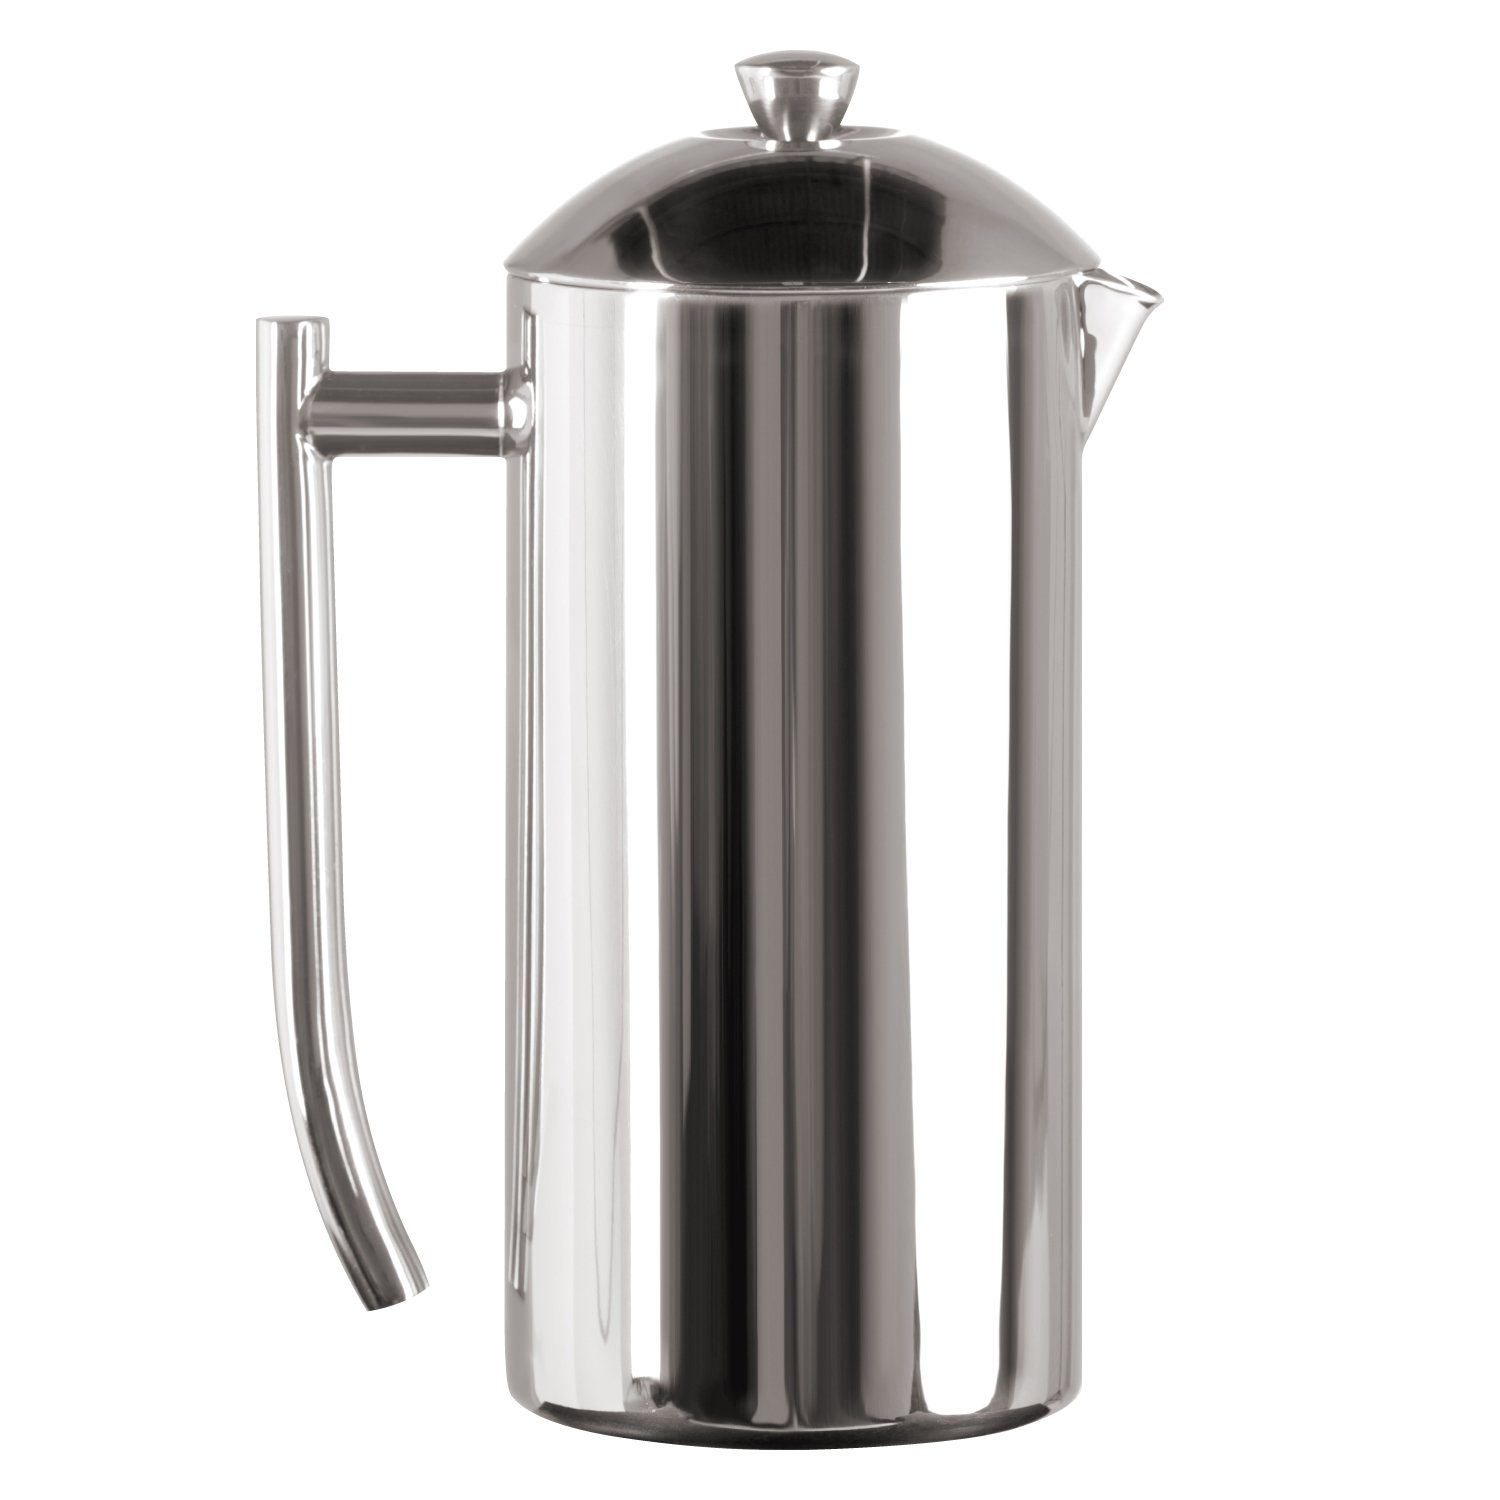 Frieling USA Double Wall Stainless Steel French Press Coffee Maker with Patented Dual Screen, Polished, 36-Ounce